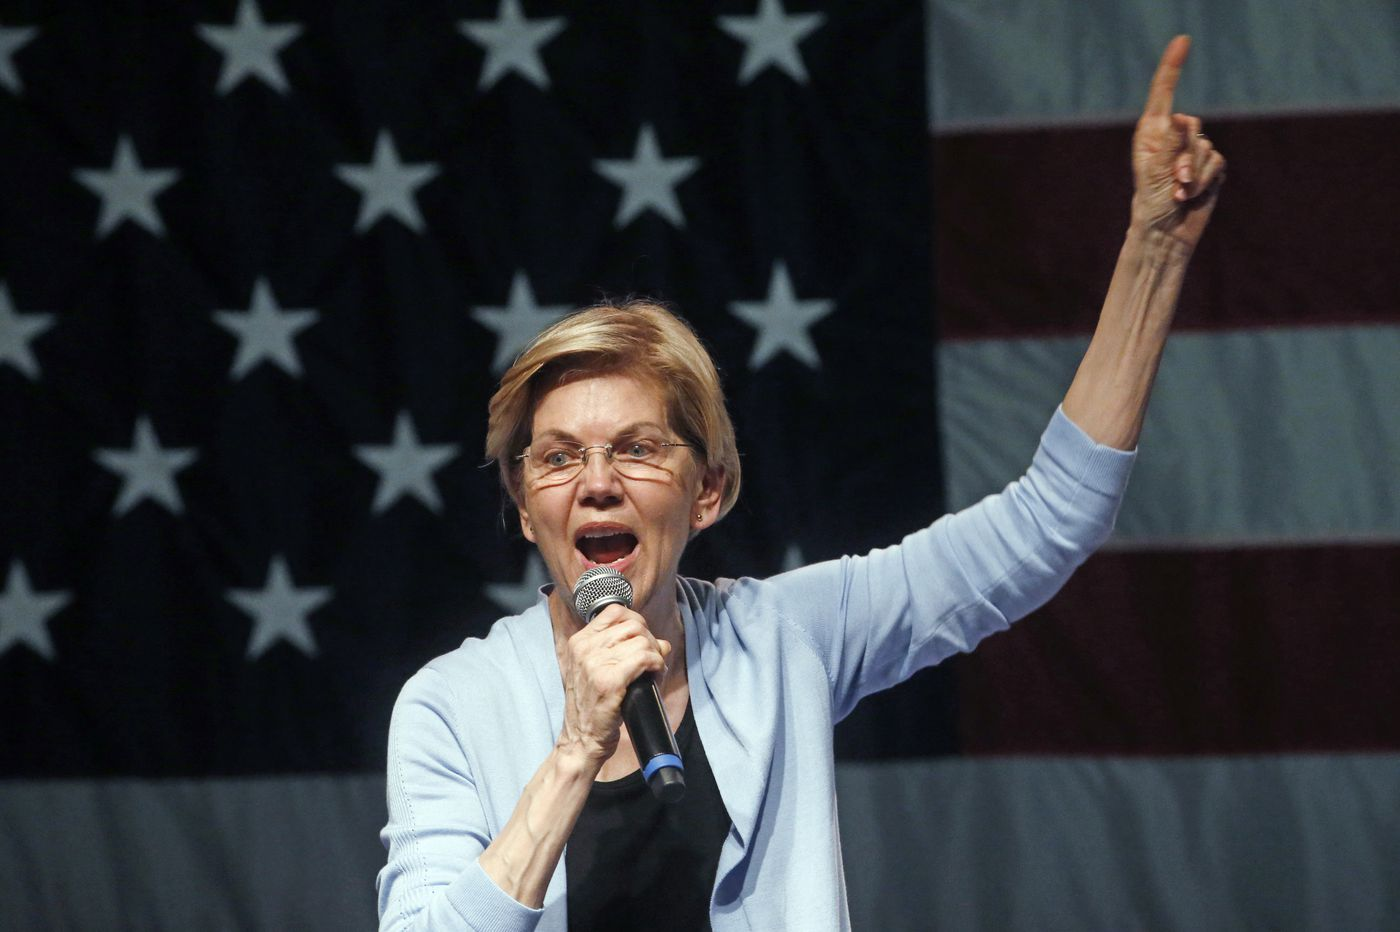 Elizabeth Warren proposes canceling student loan debt free public college